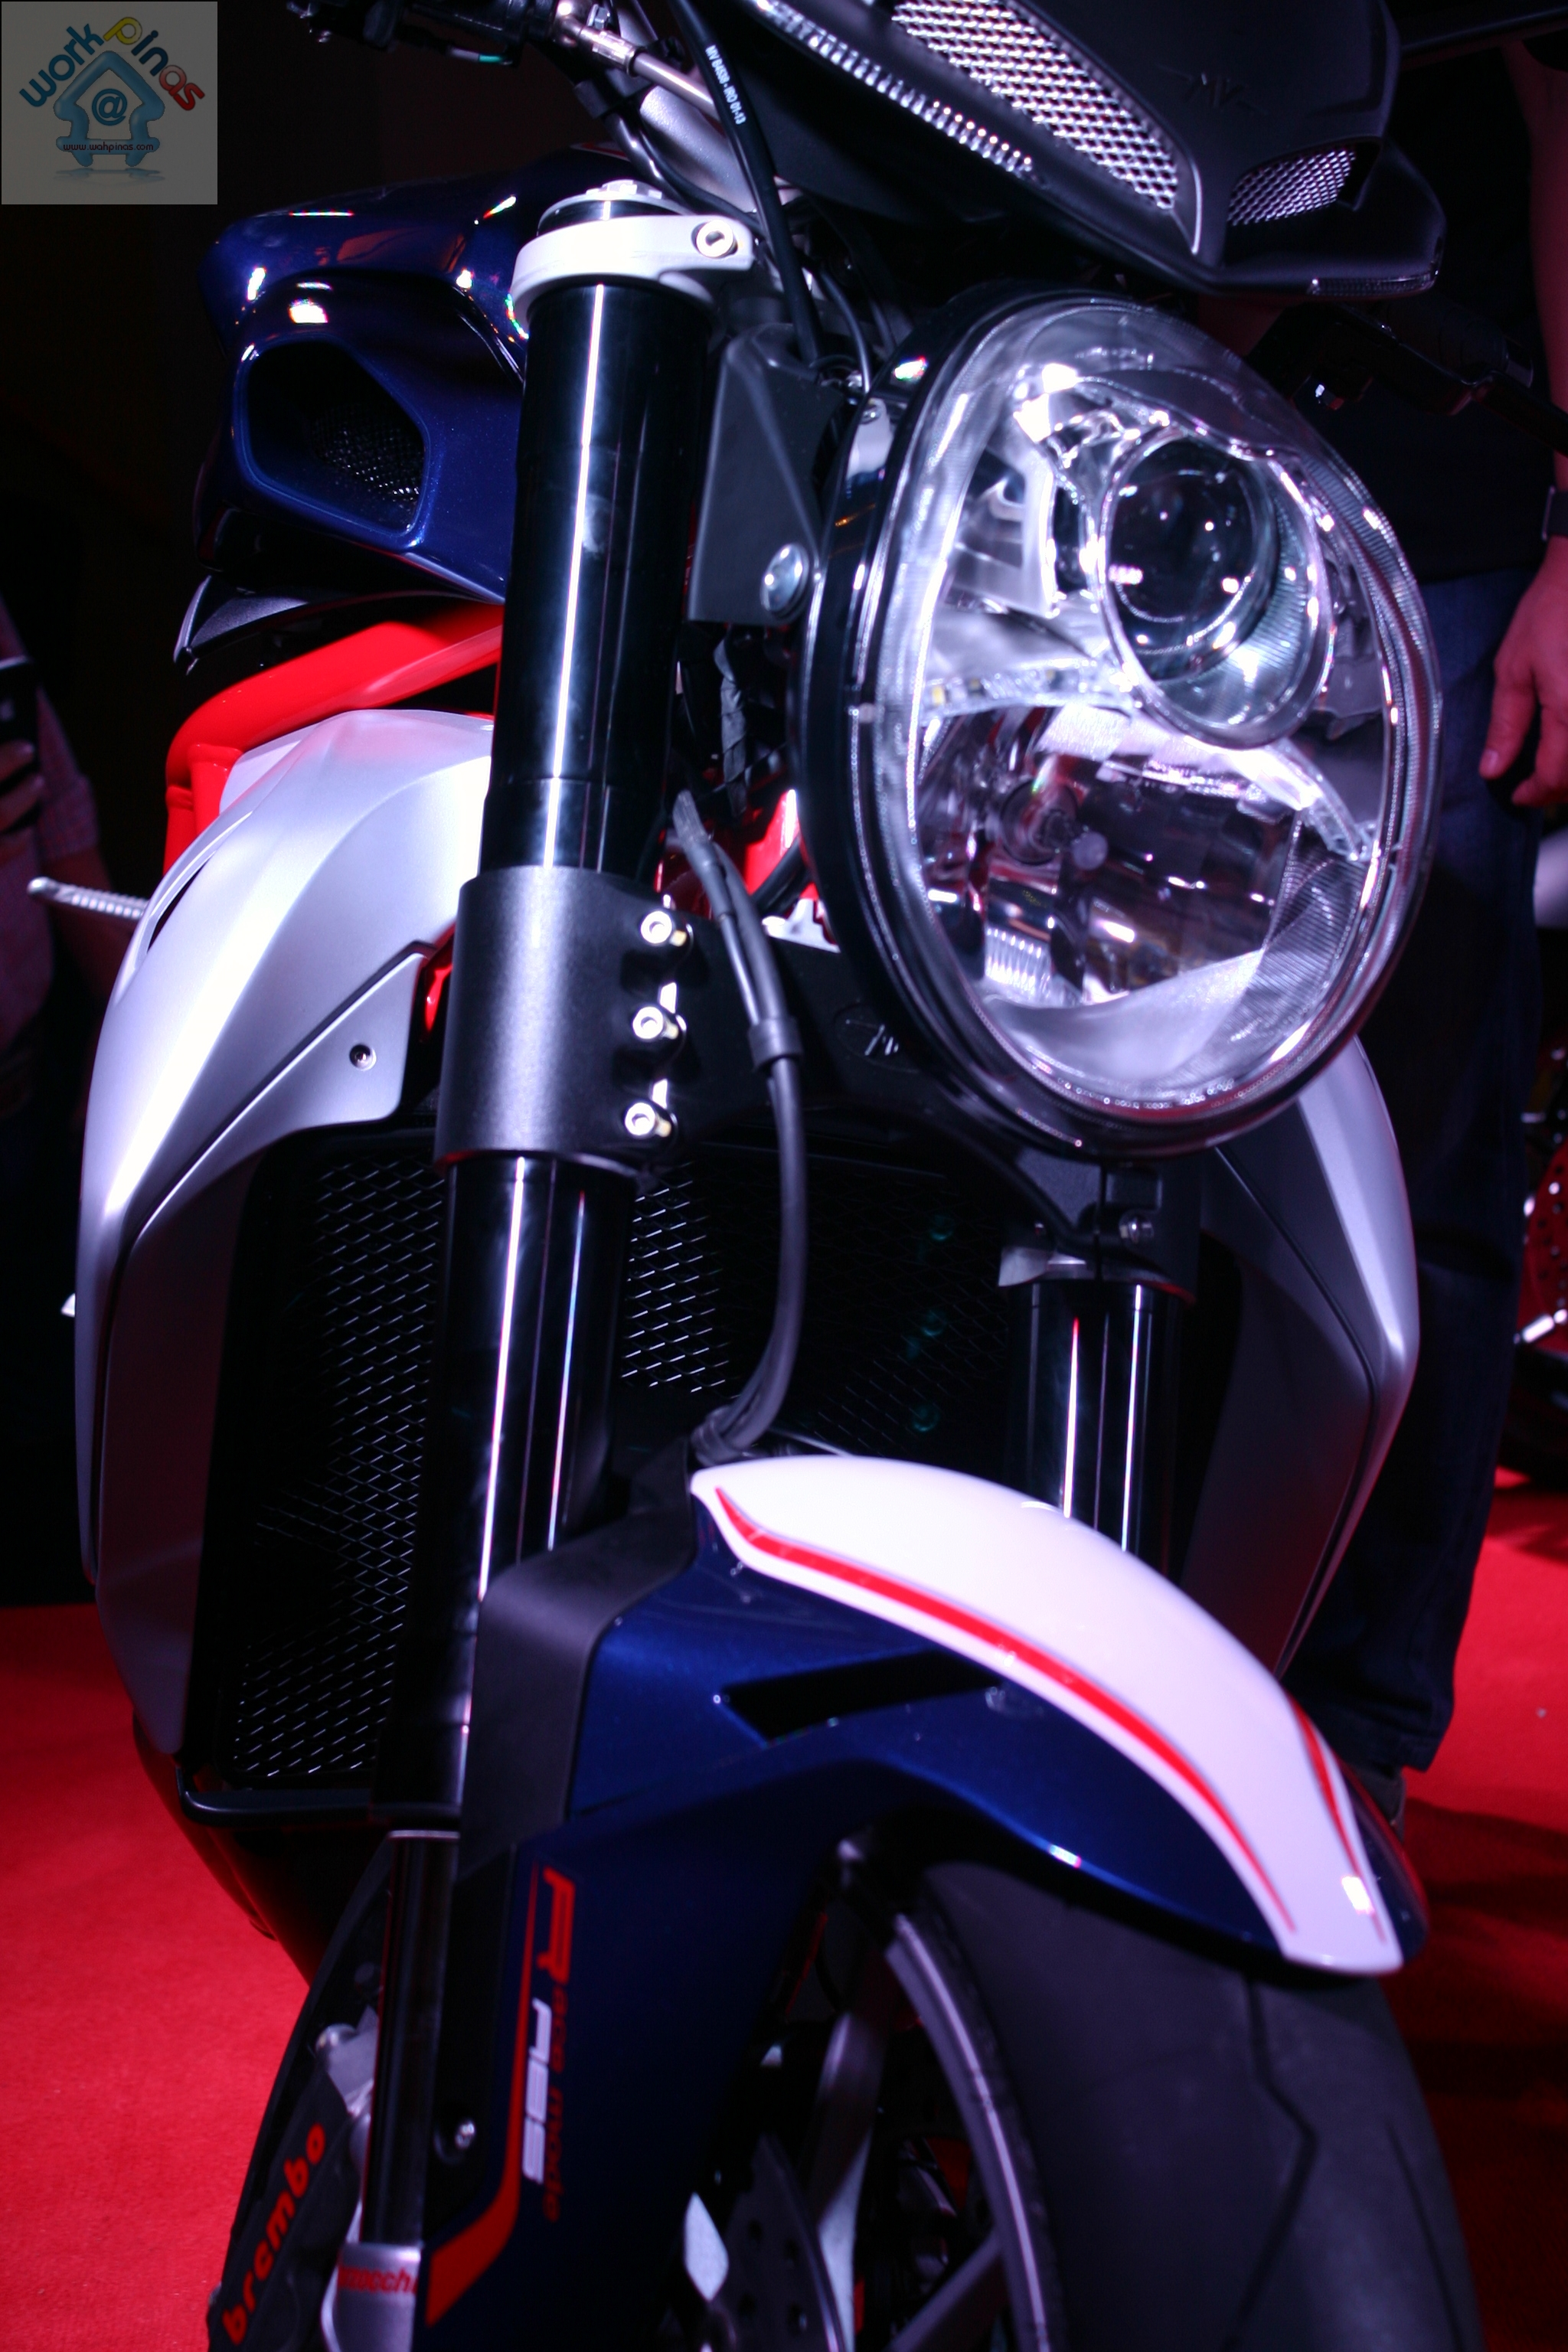 mv agusta launch in the philippines at mango tree | w@hpinas